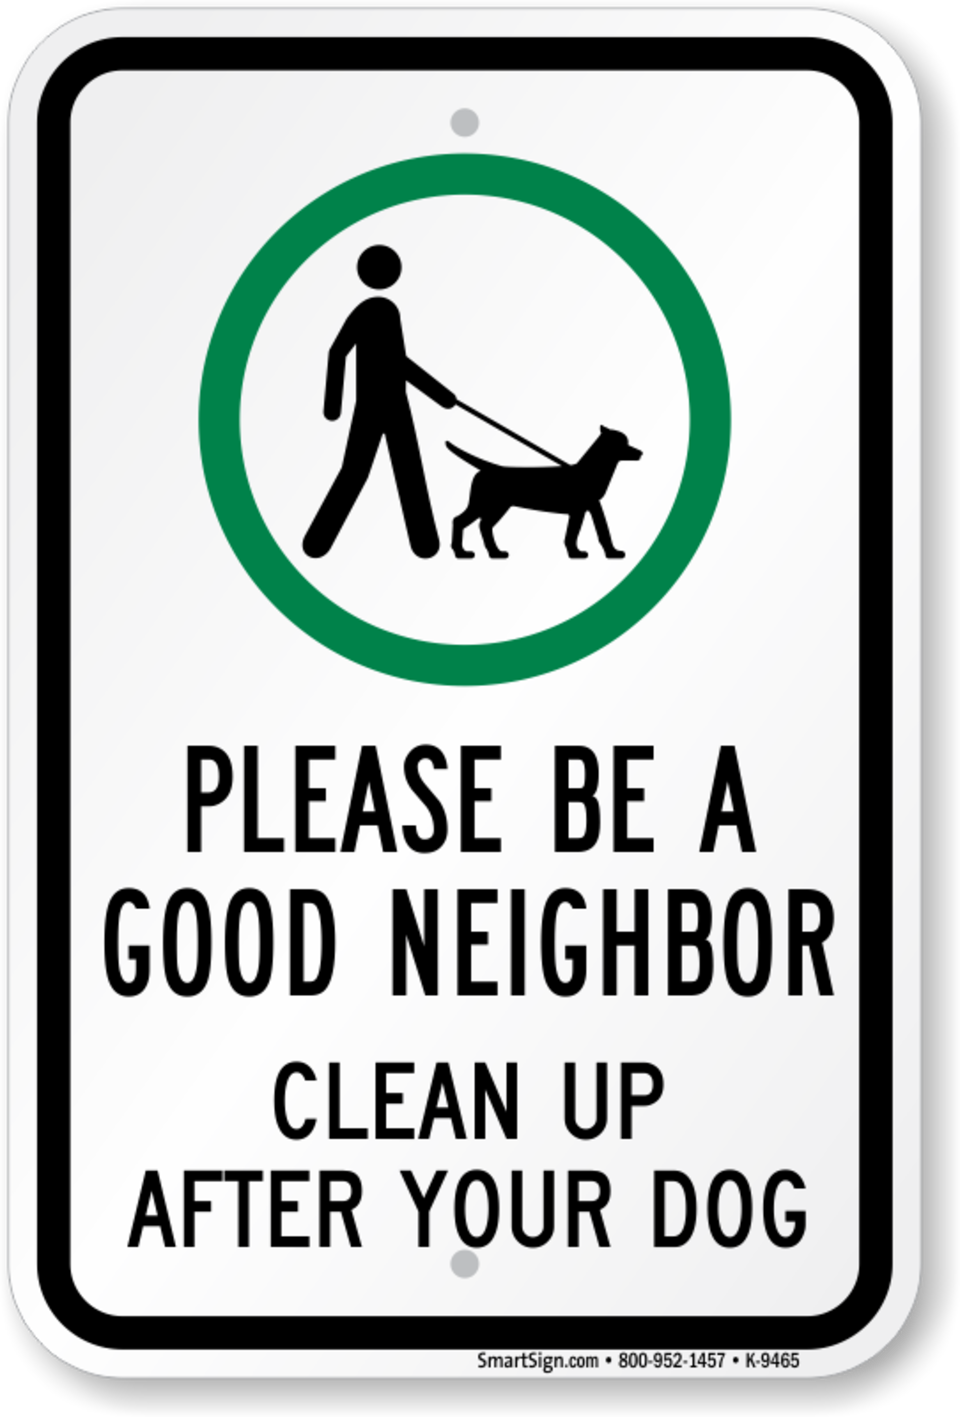 Good neighbor clean up sign k 9465